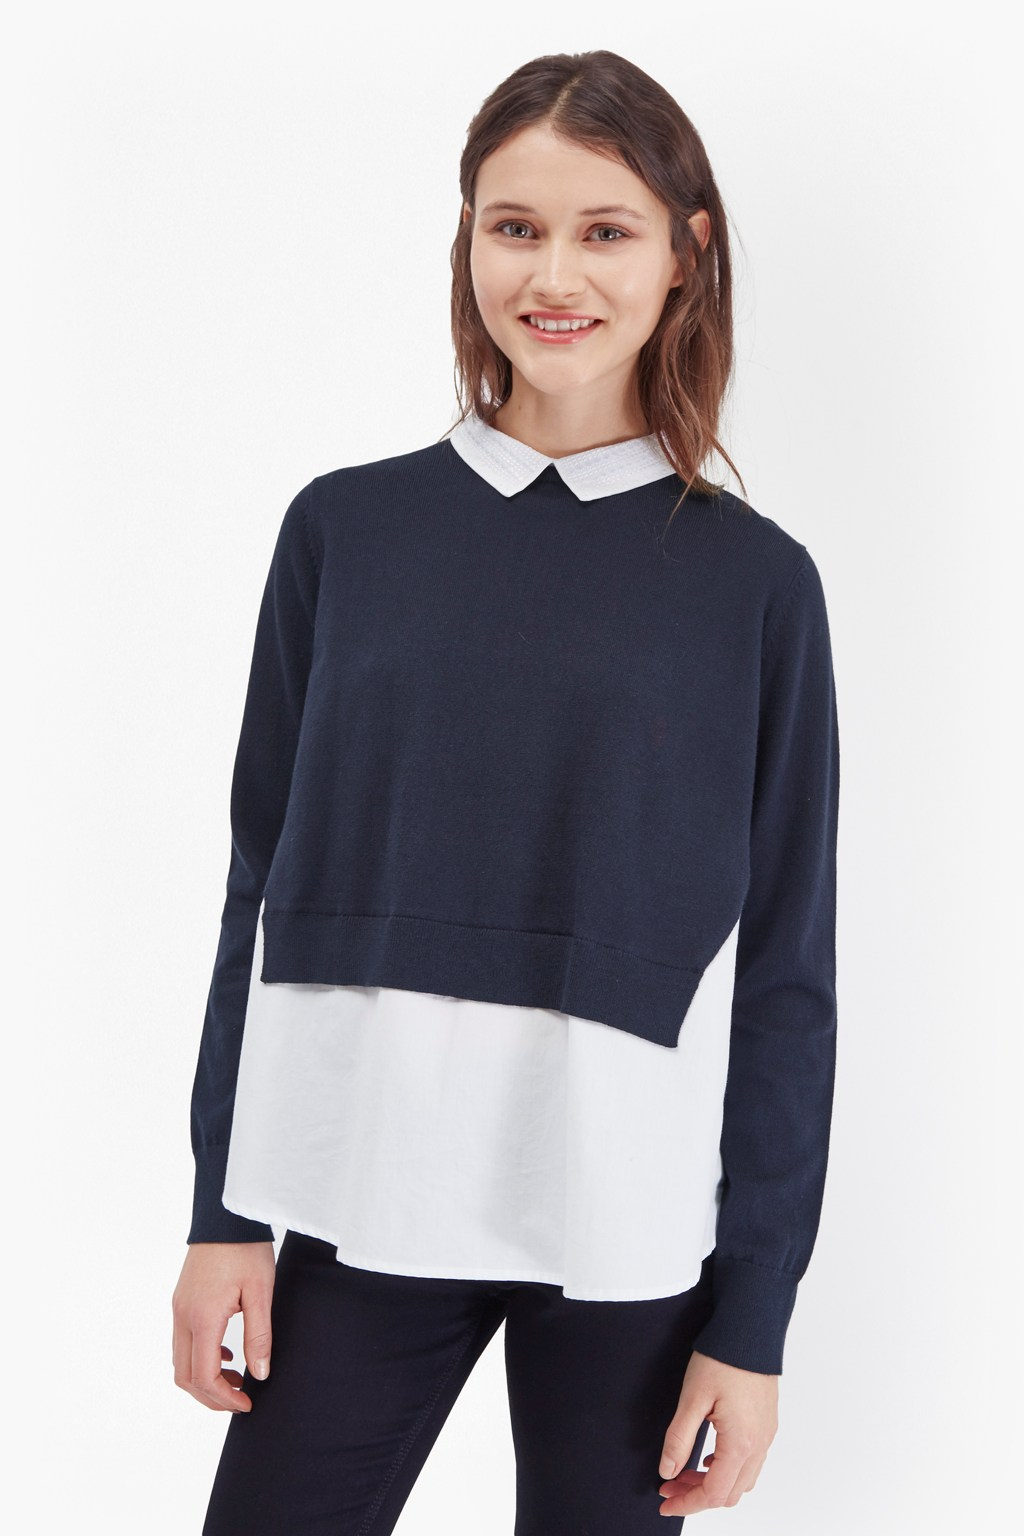 Alternatively, you can wear it like a classic jumper: layered over the top of your shirt and/or tie and then buttoned up all the way or with a couple left undone.